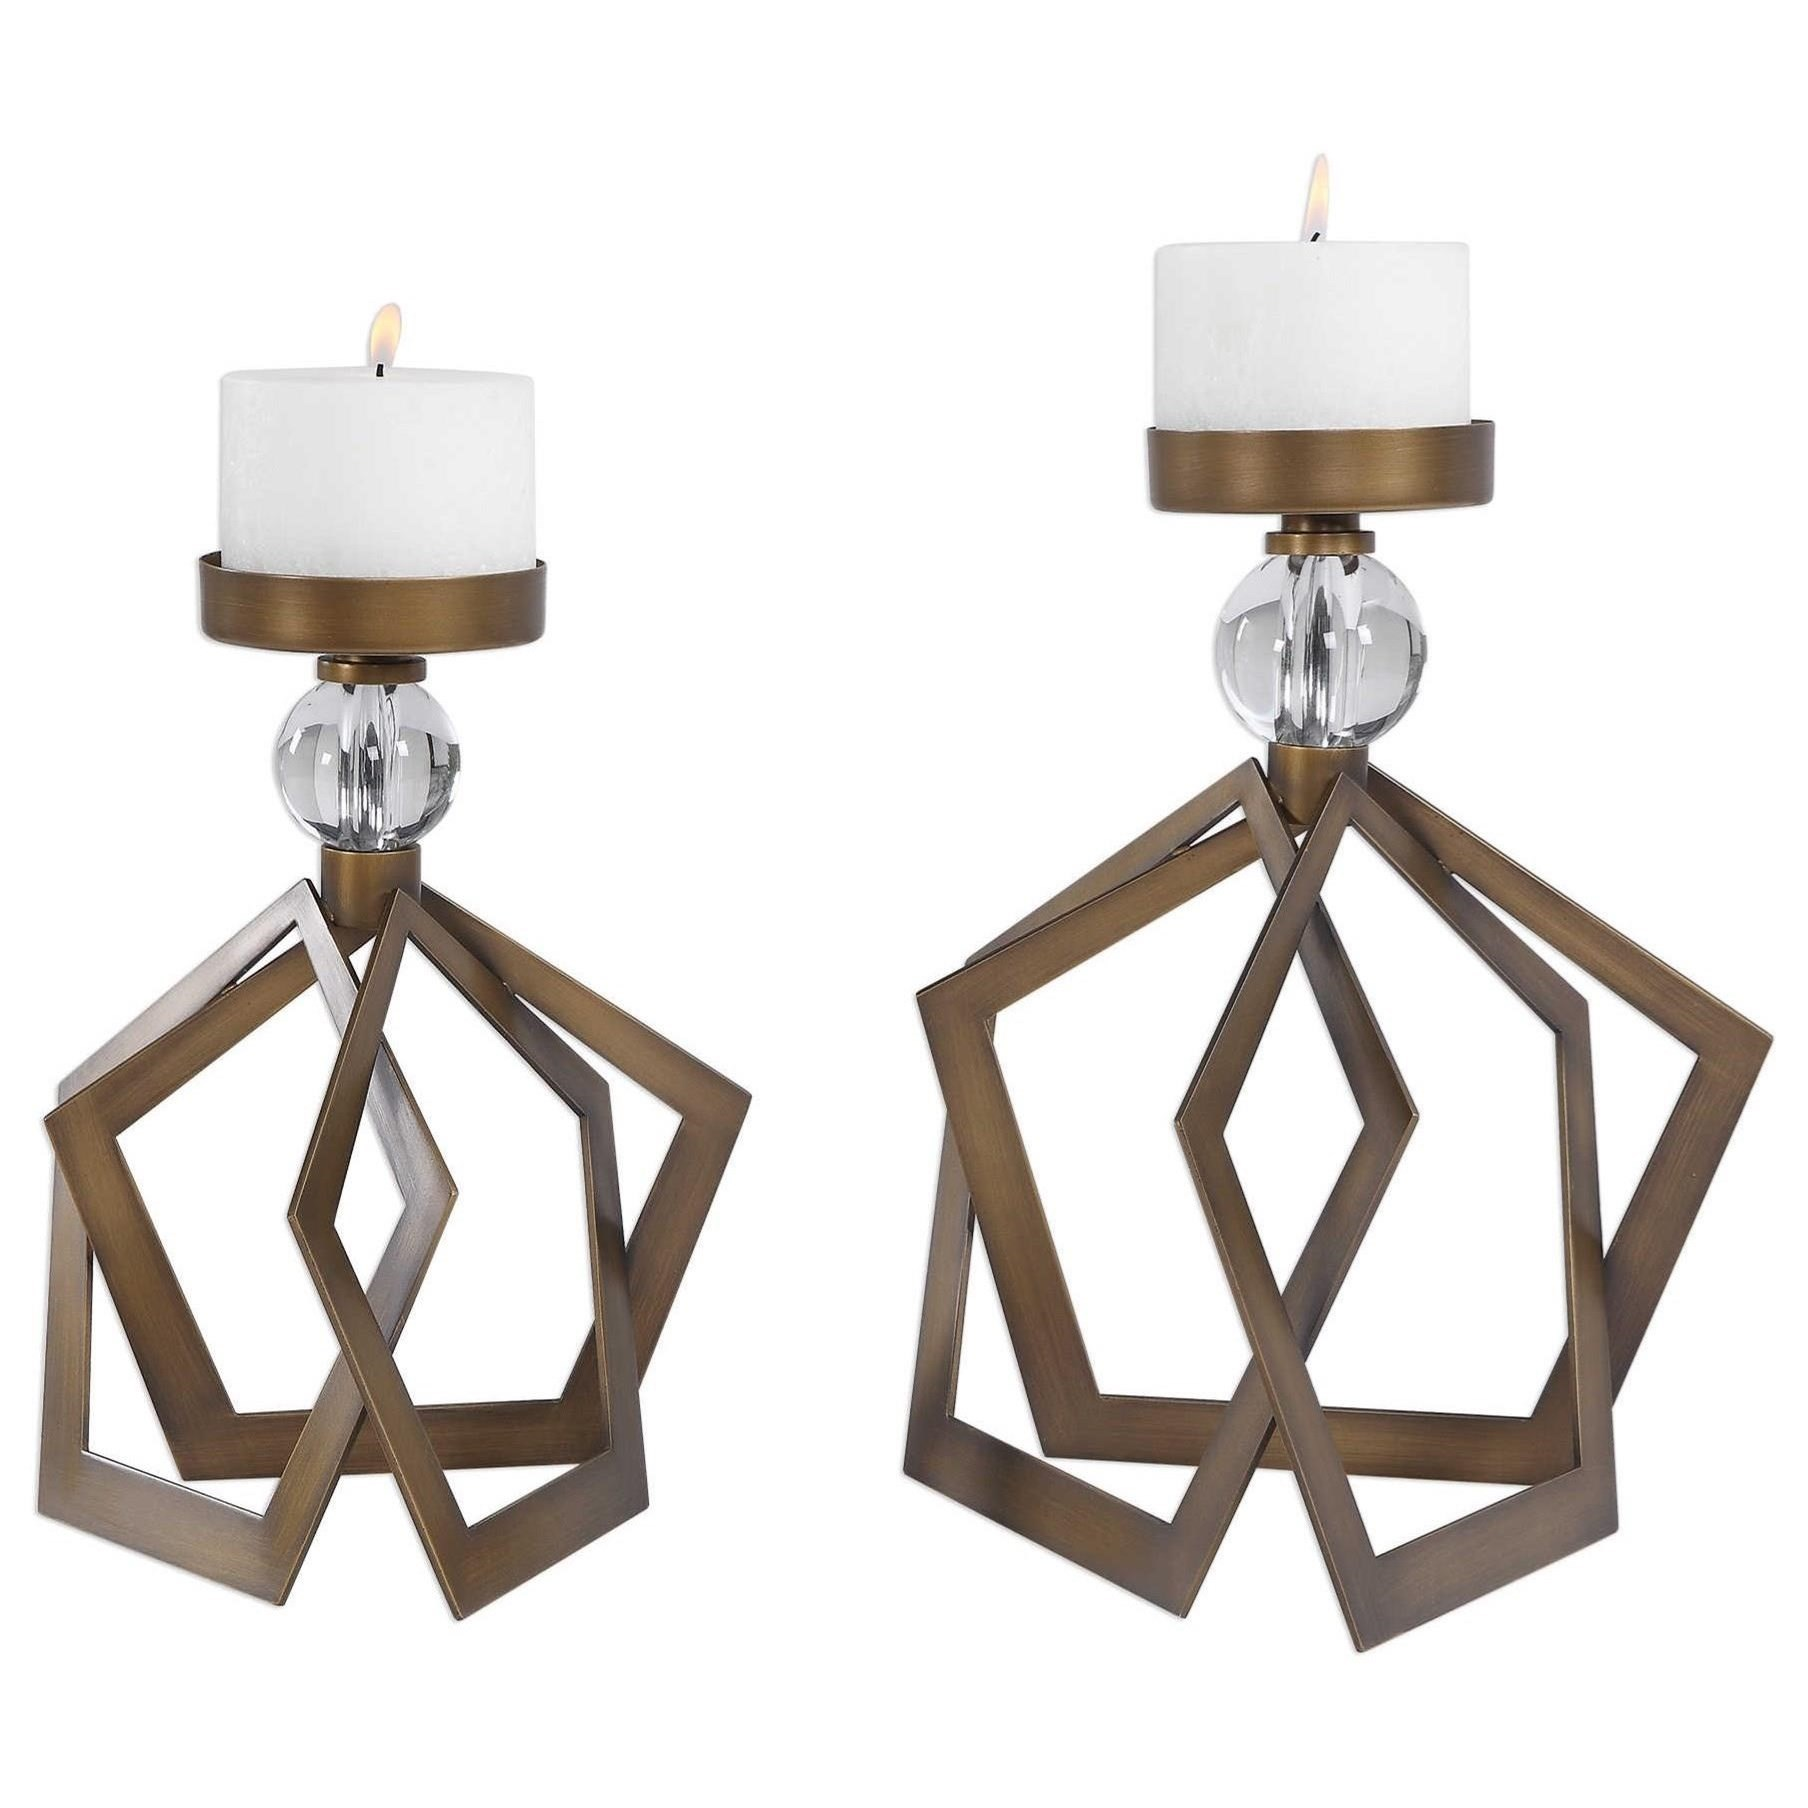 Accessories - Candle Holders Lianna Open Bronze Candleholders (Set of 2) by Uttermost at Mueller Furniture